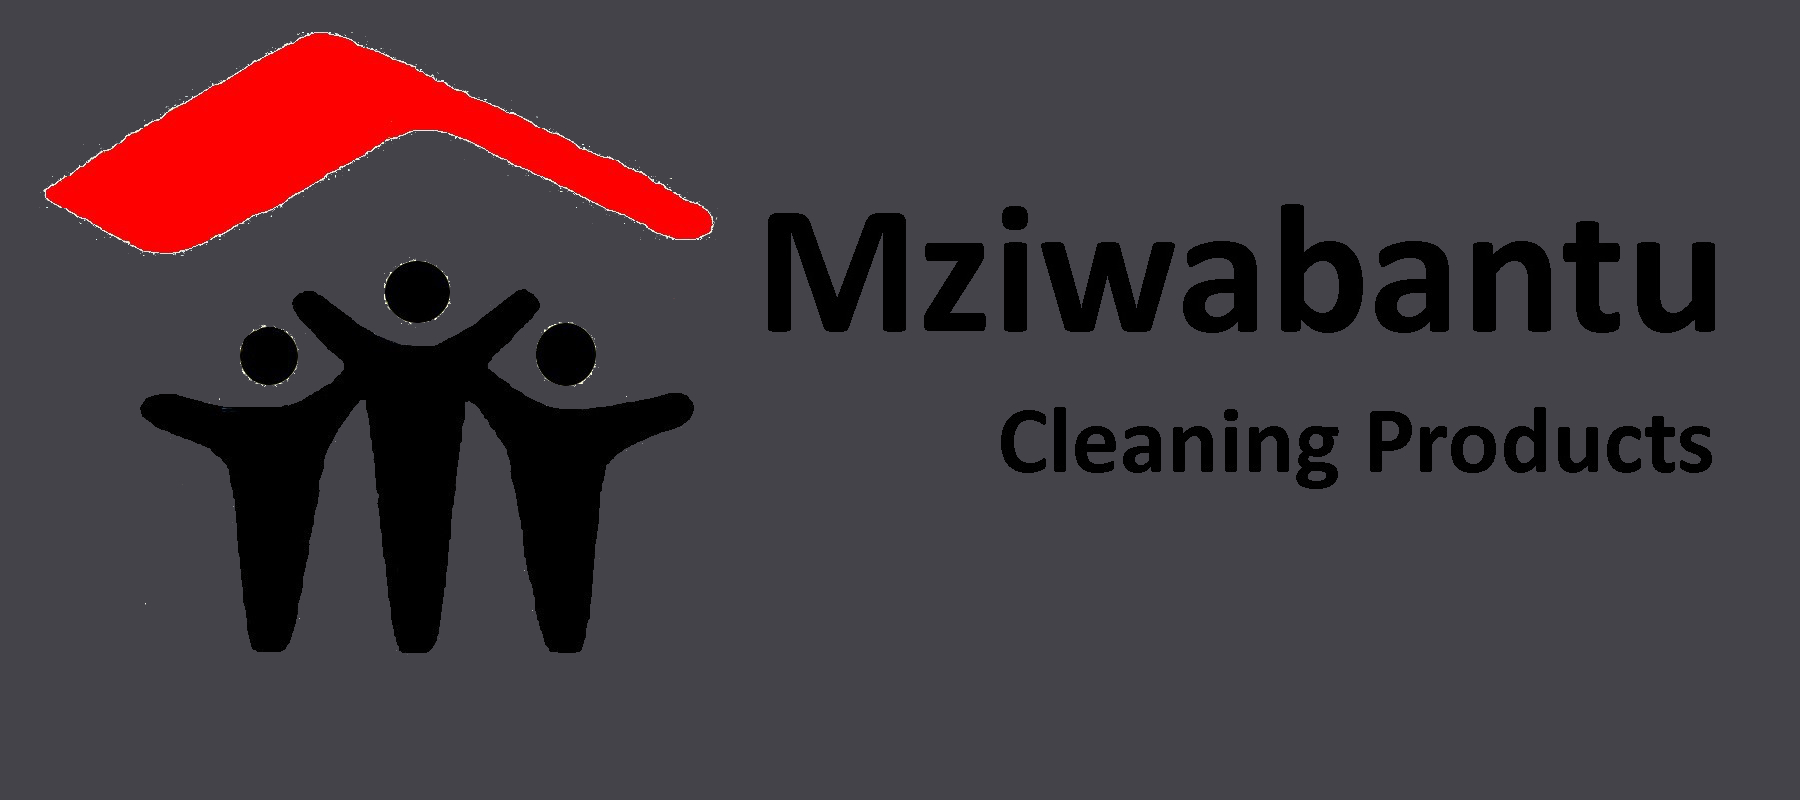 Mziwabantu Cleaning Products